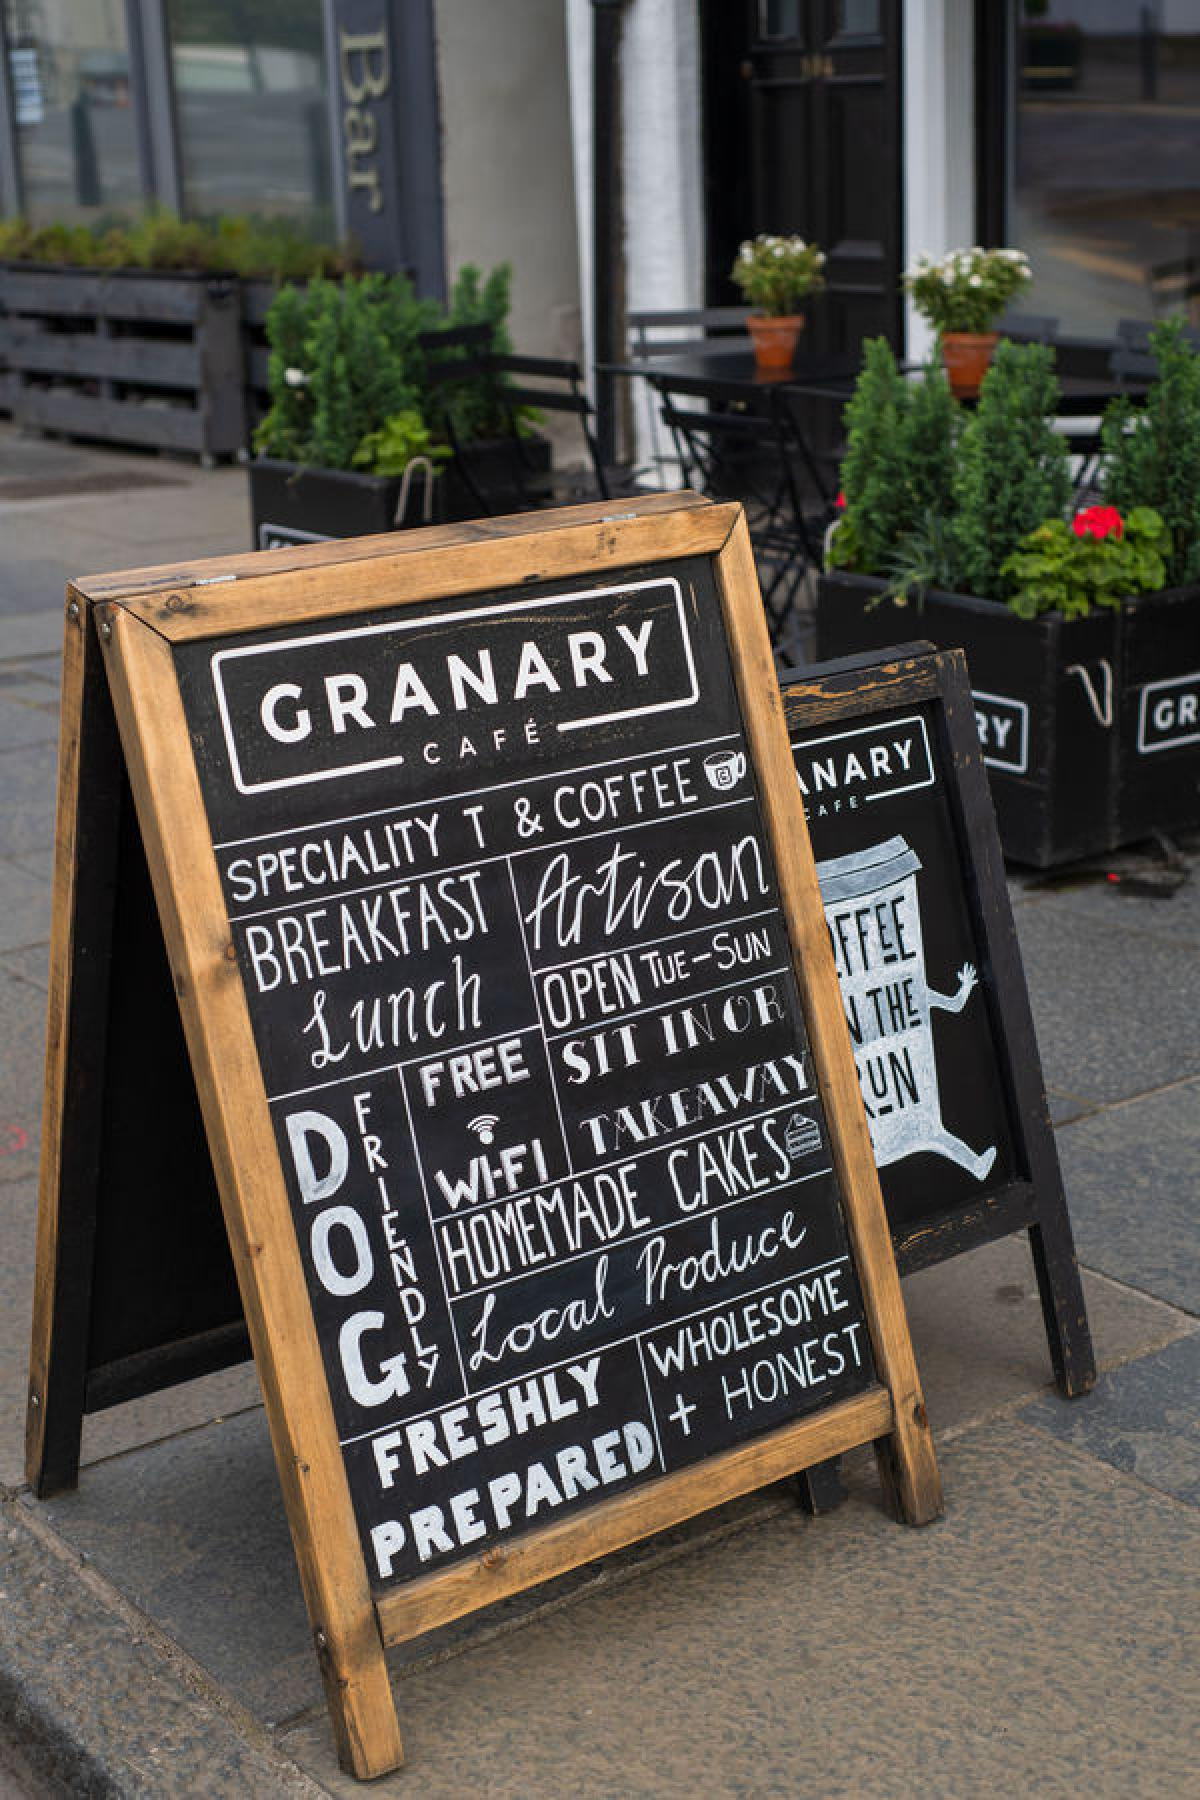 Images from Granary Café